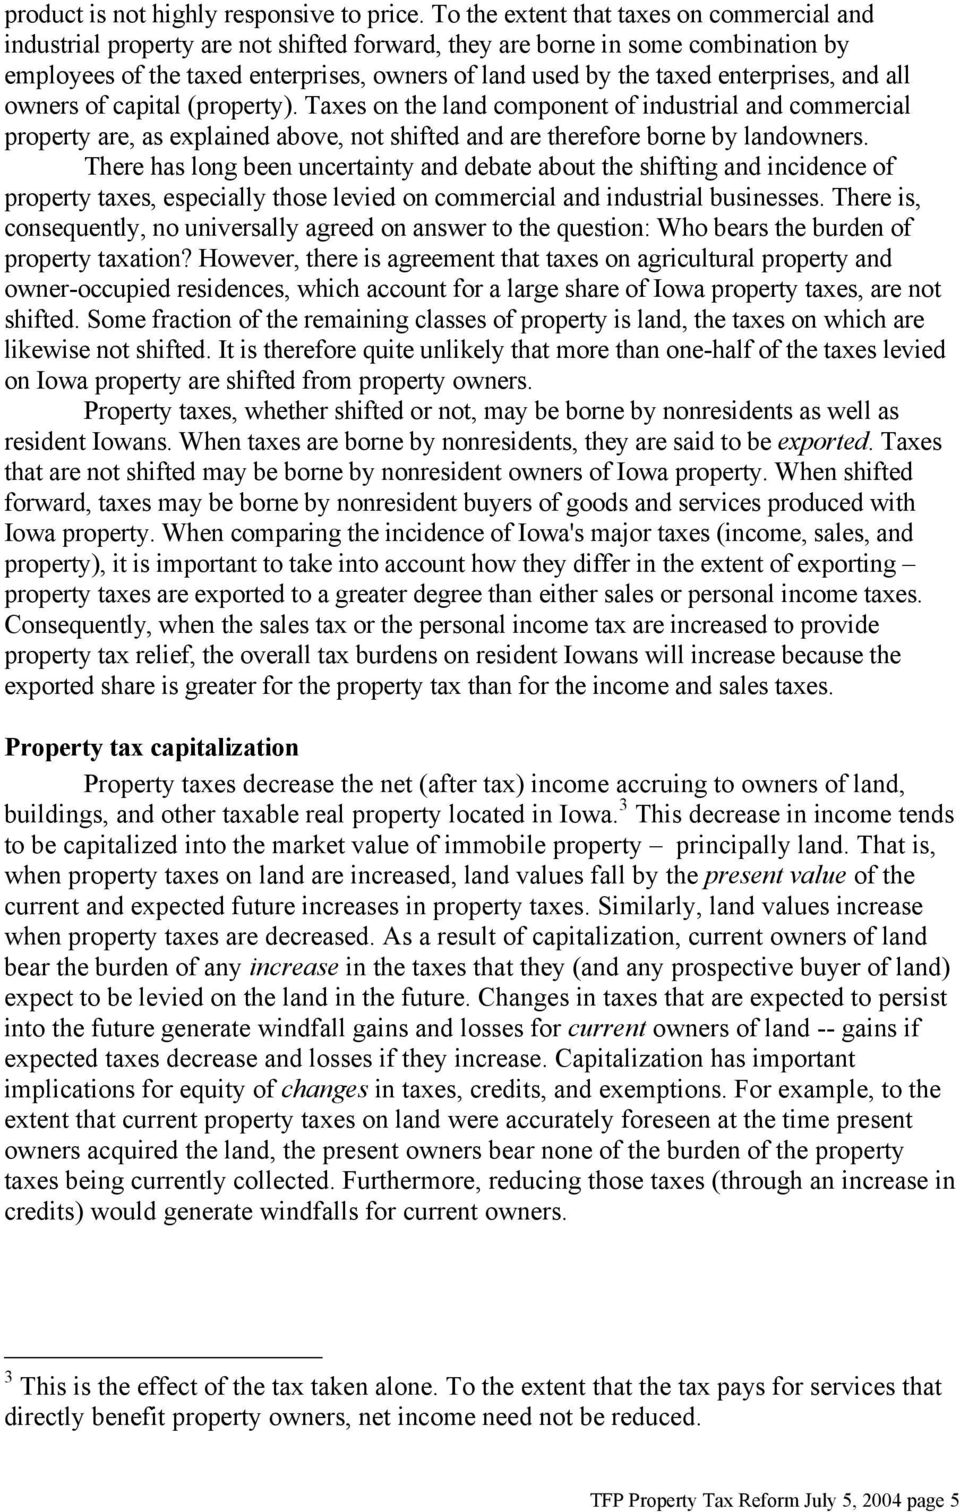 enterprises, and all owners of capital (property). Taxes on the land component of industrial and commercial property are, as explained above, not shifted and are therefore borne by landowners.